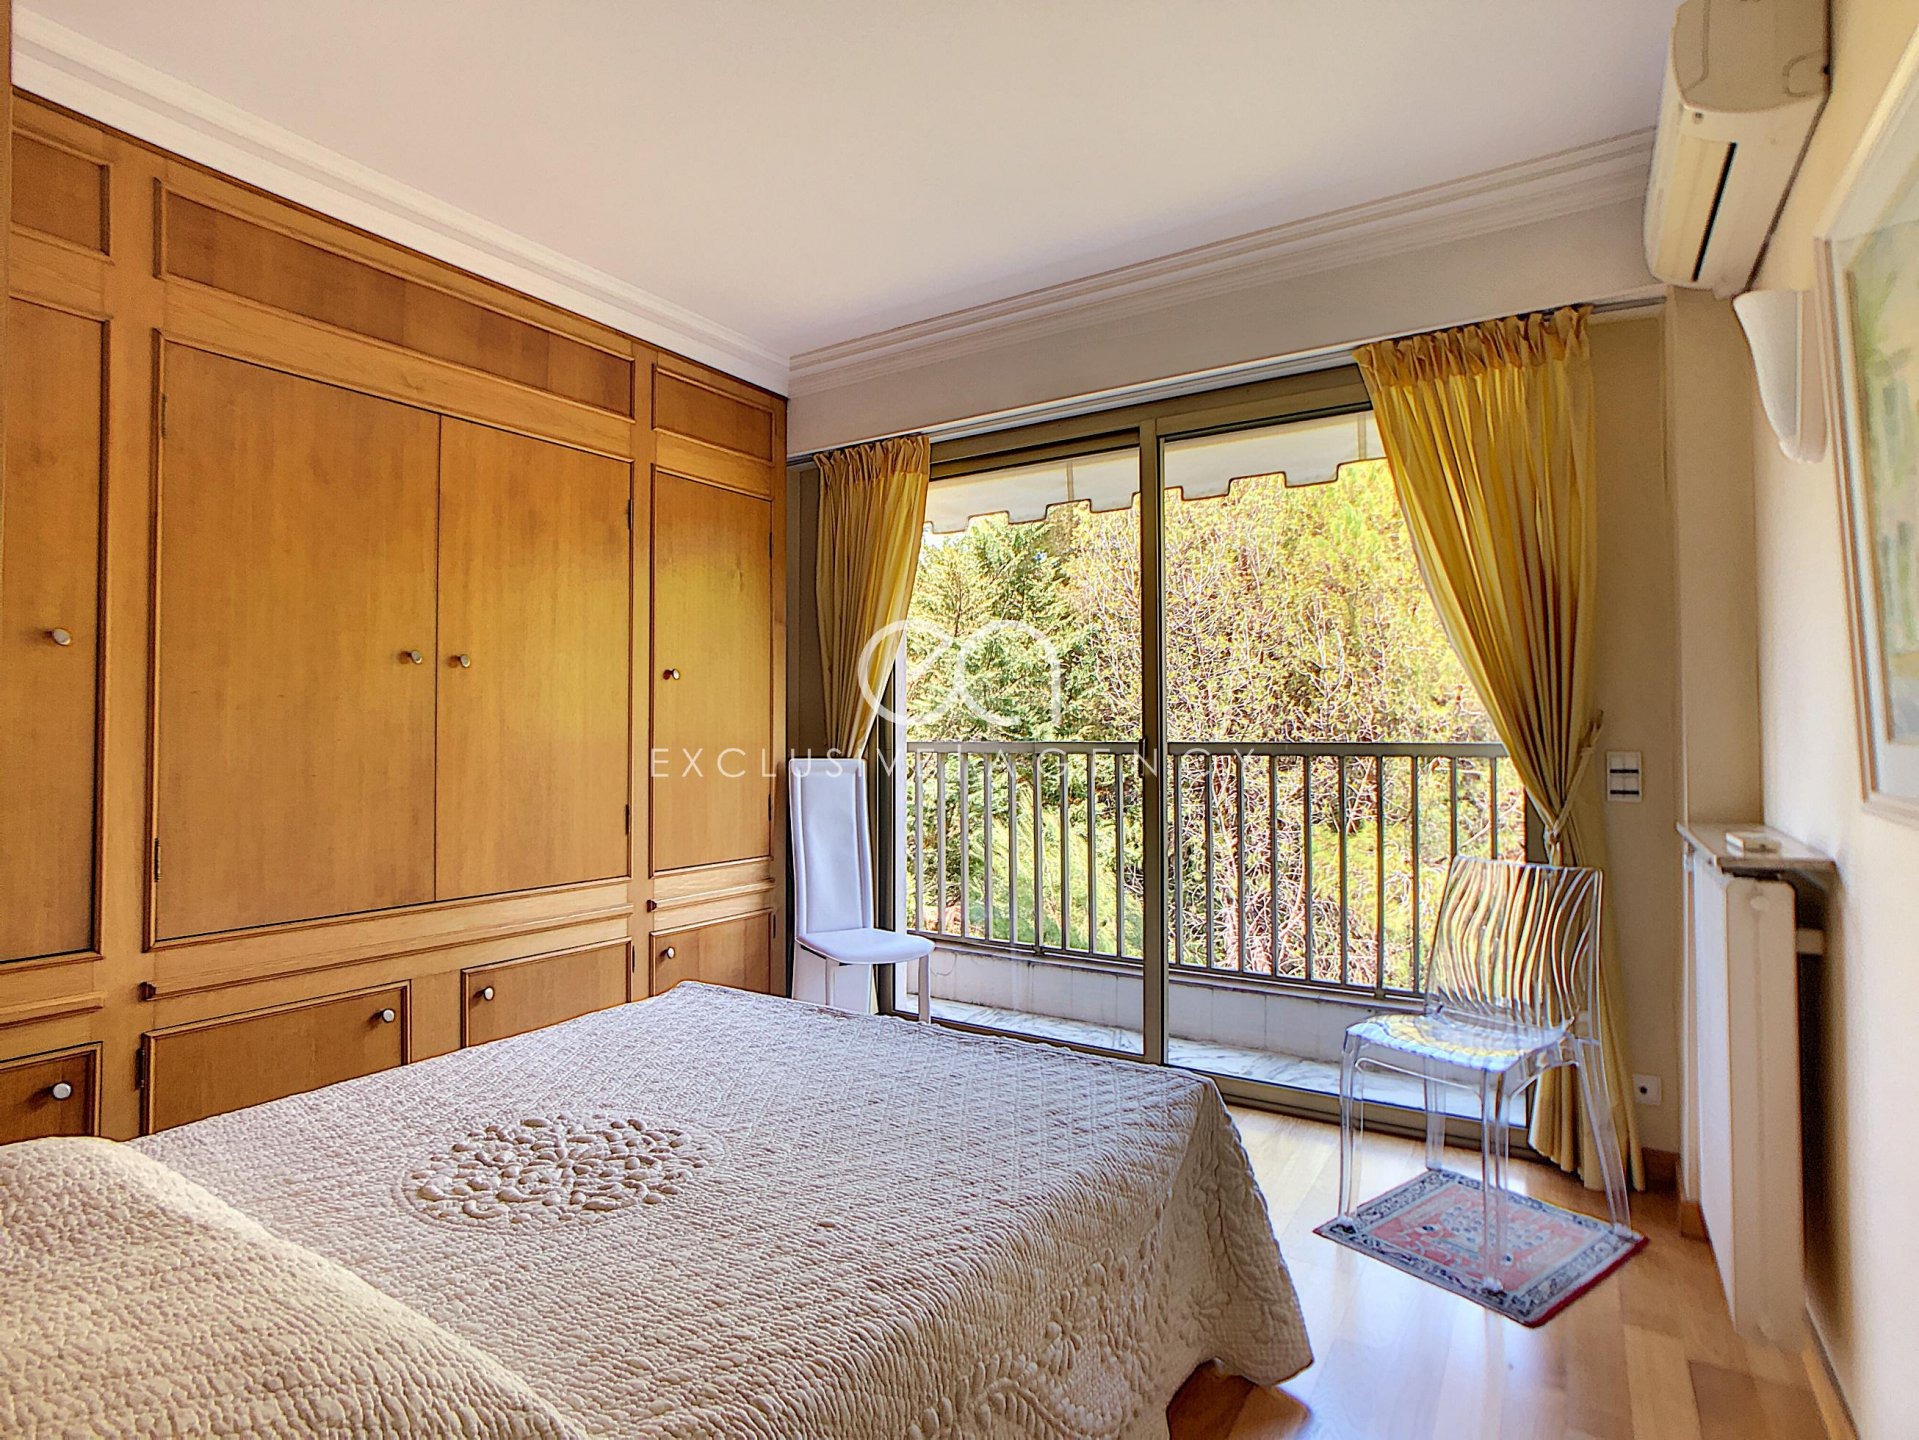 BUY APARTMENT_IN_CANNES 107SQM 2 – 3_BEDROOM WITH PANORAMIC SEA VIEW